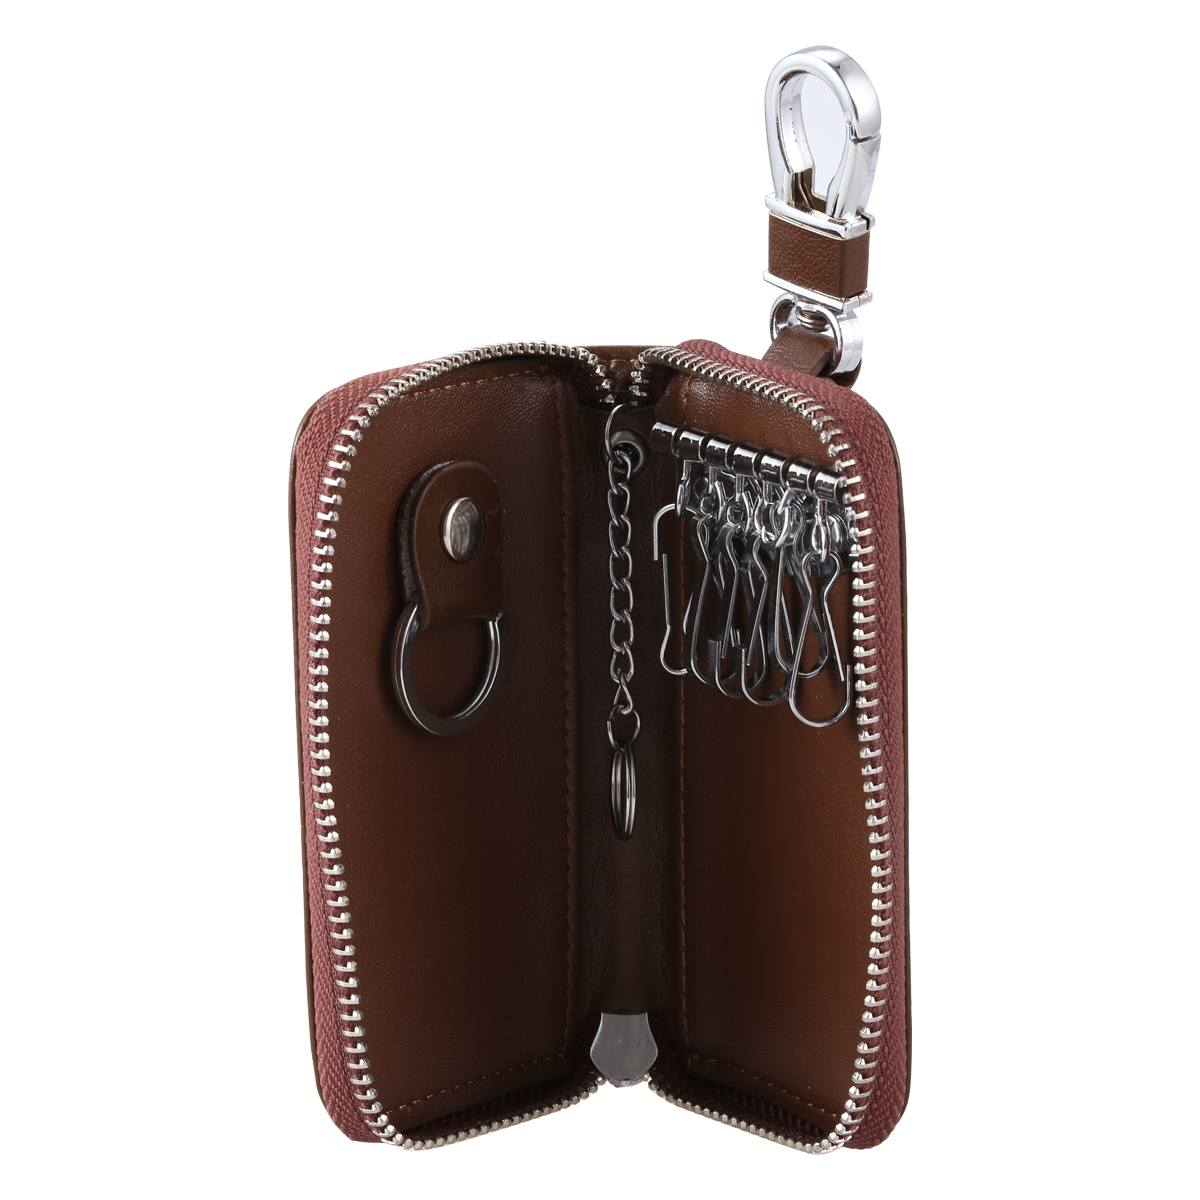 15505b5252e5f Aliexpress.com   Buy Men Leather Zip Around 6 Hook Key Case Car Key Holder  Wallet from Reliable Key Wallets suppliers on Life Comfortable Shoe+Useful  Bag ...